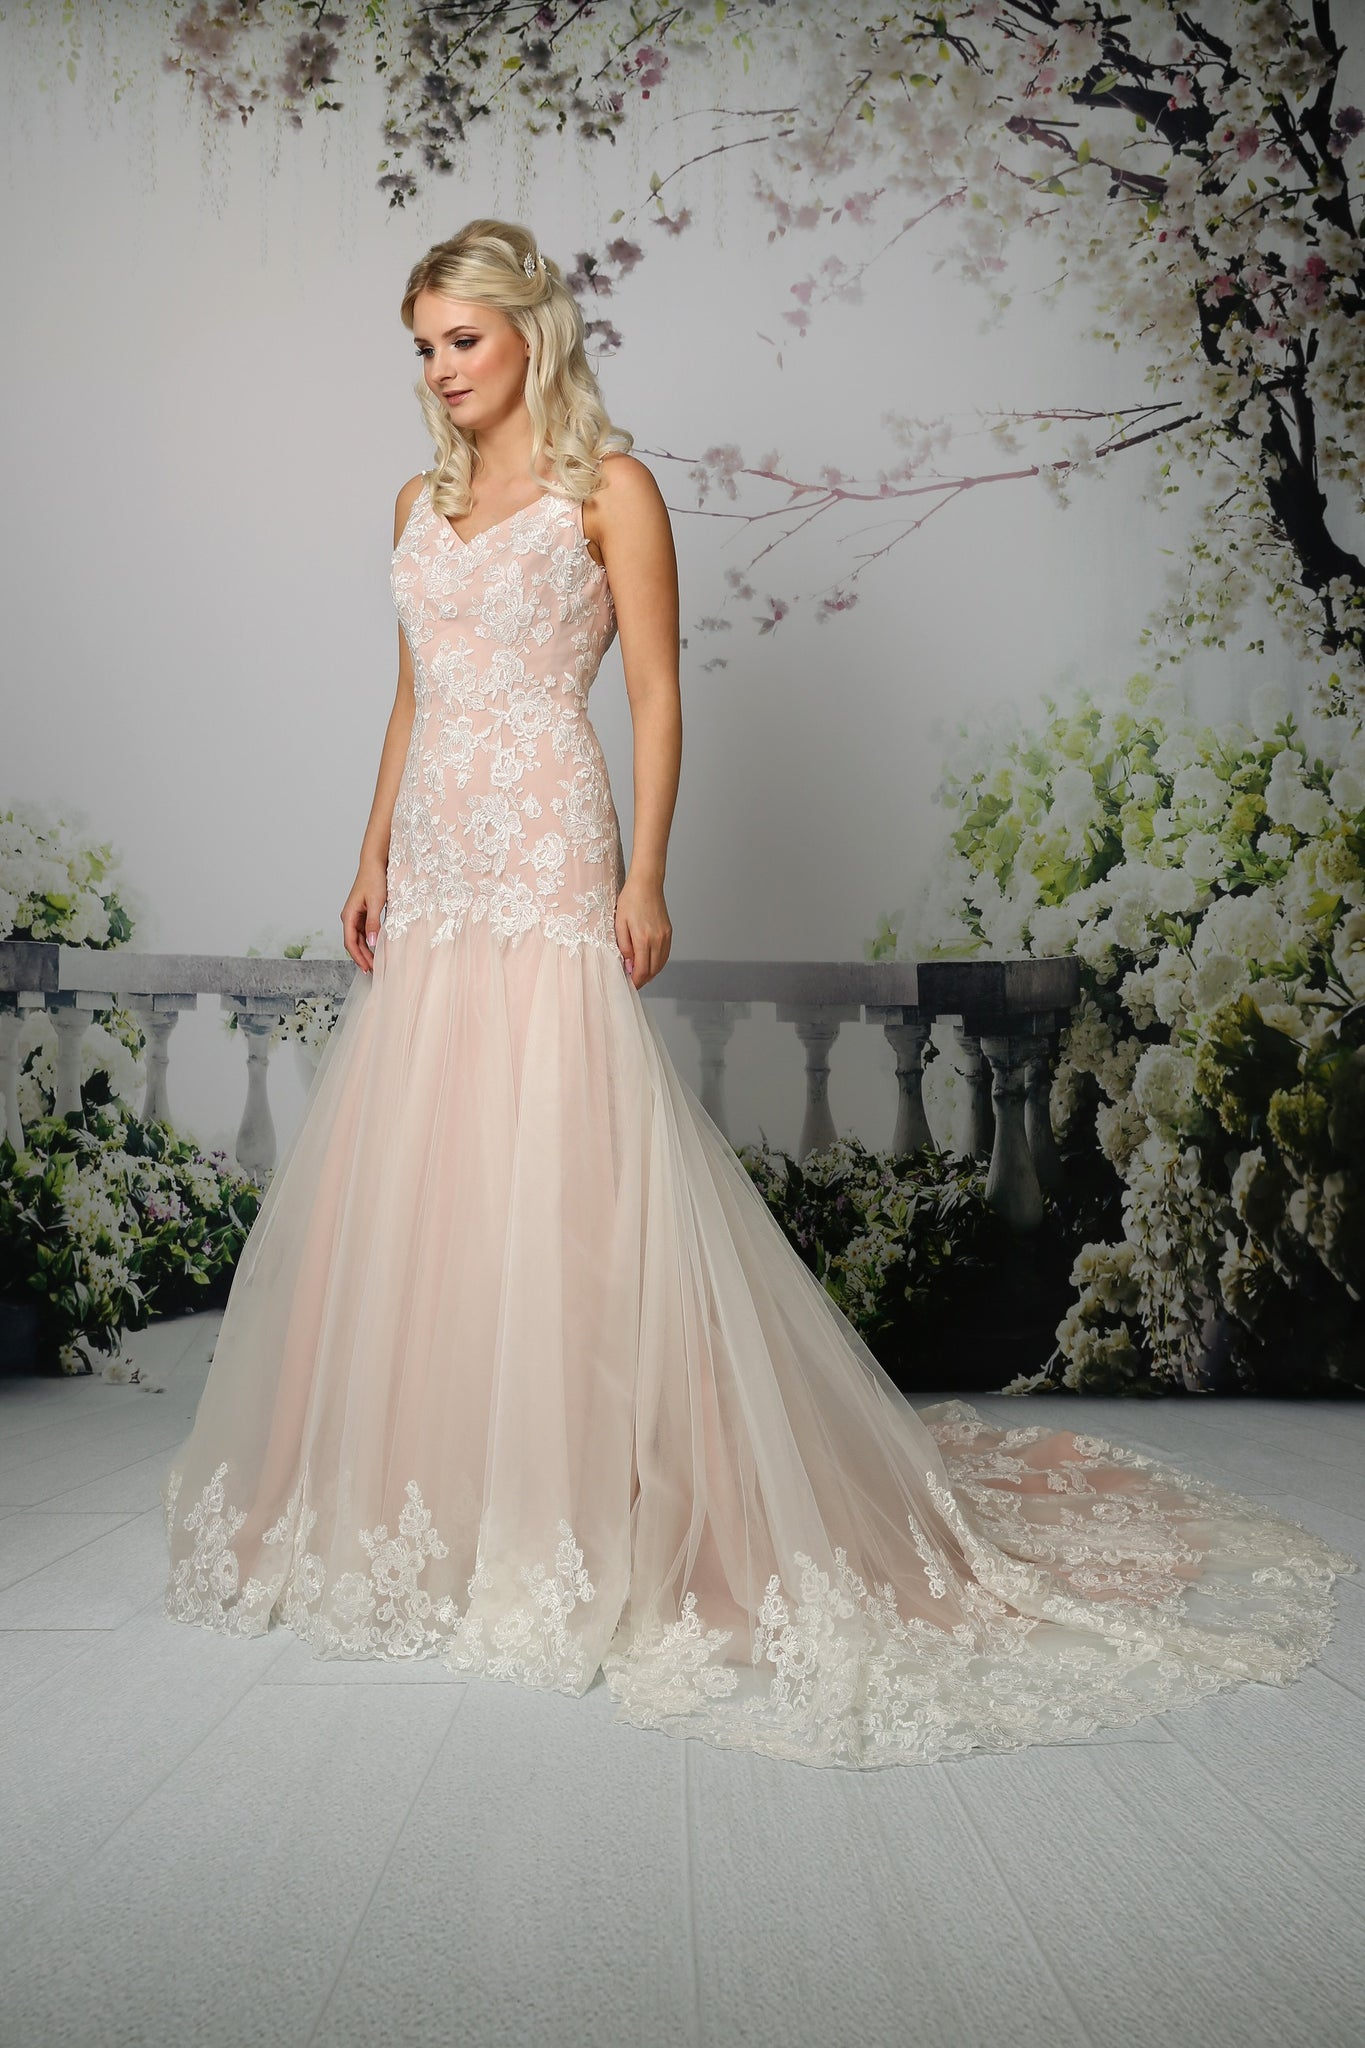 Fitted chiffon and tulle gown from the Emma Bridals collection